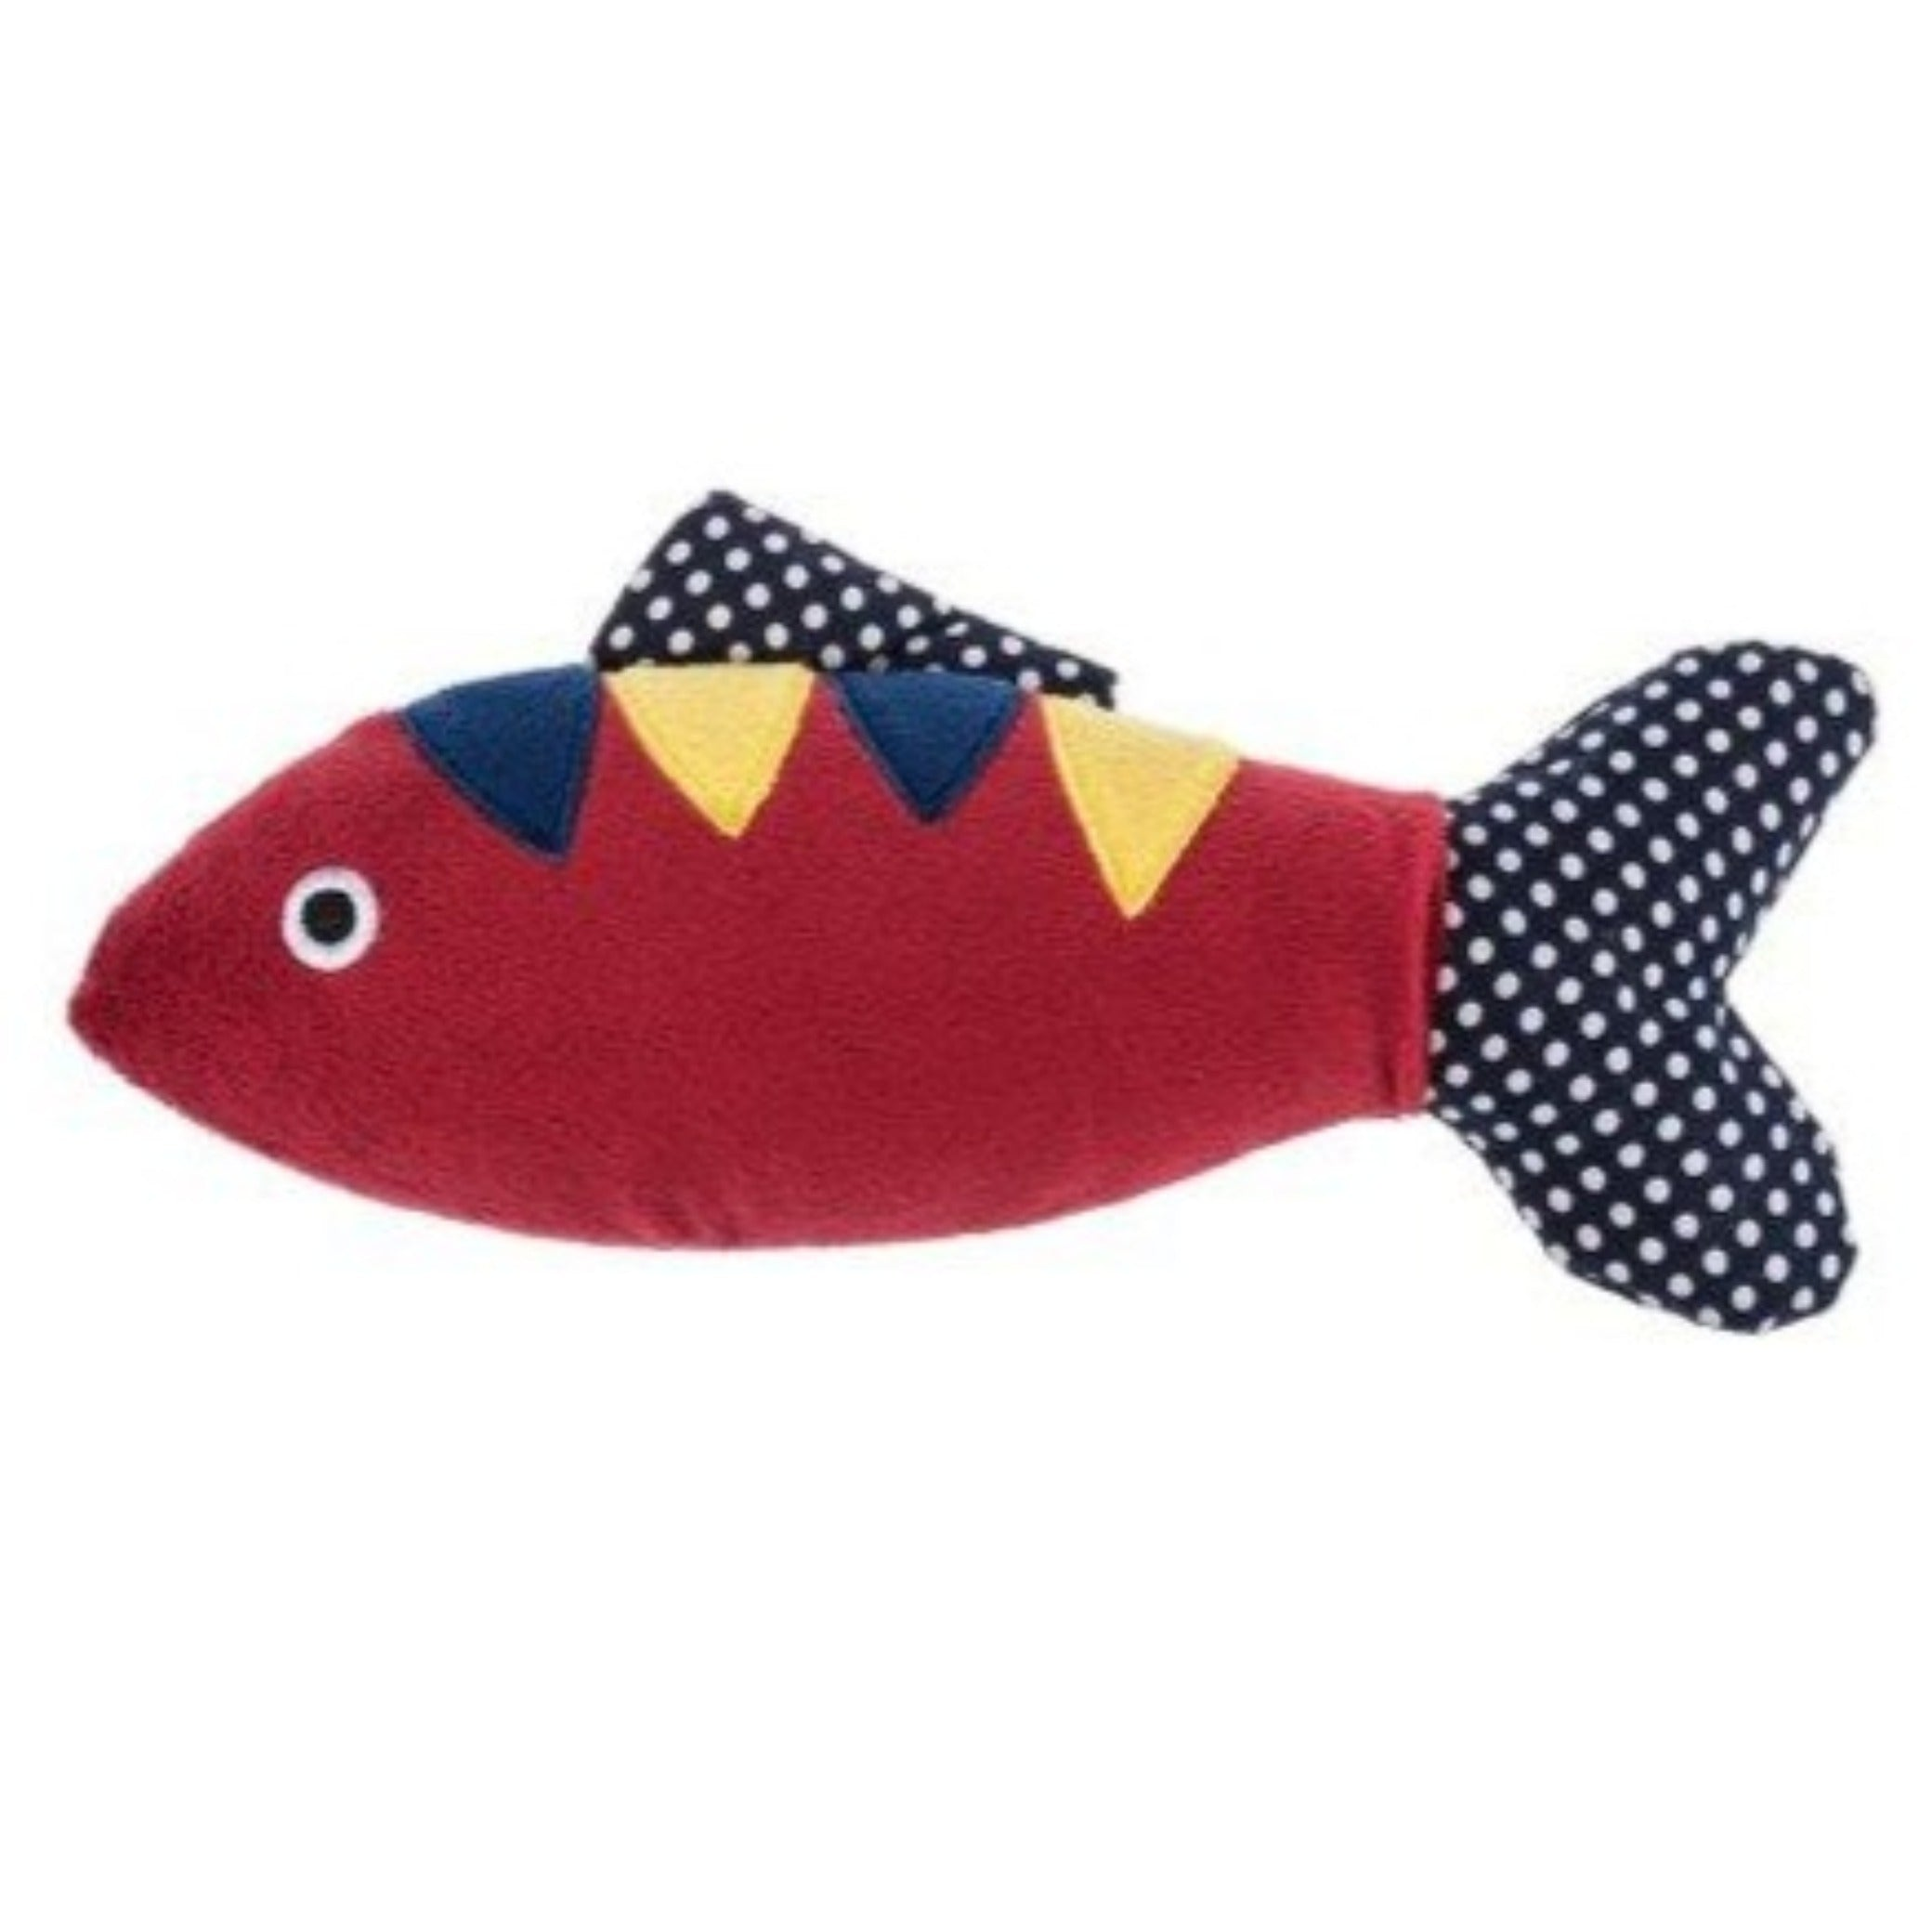 Ganz fish crinkle squeak toy